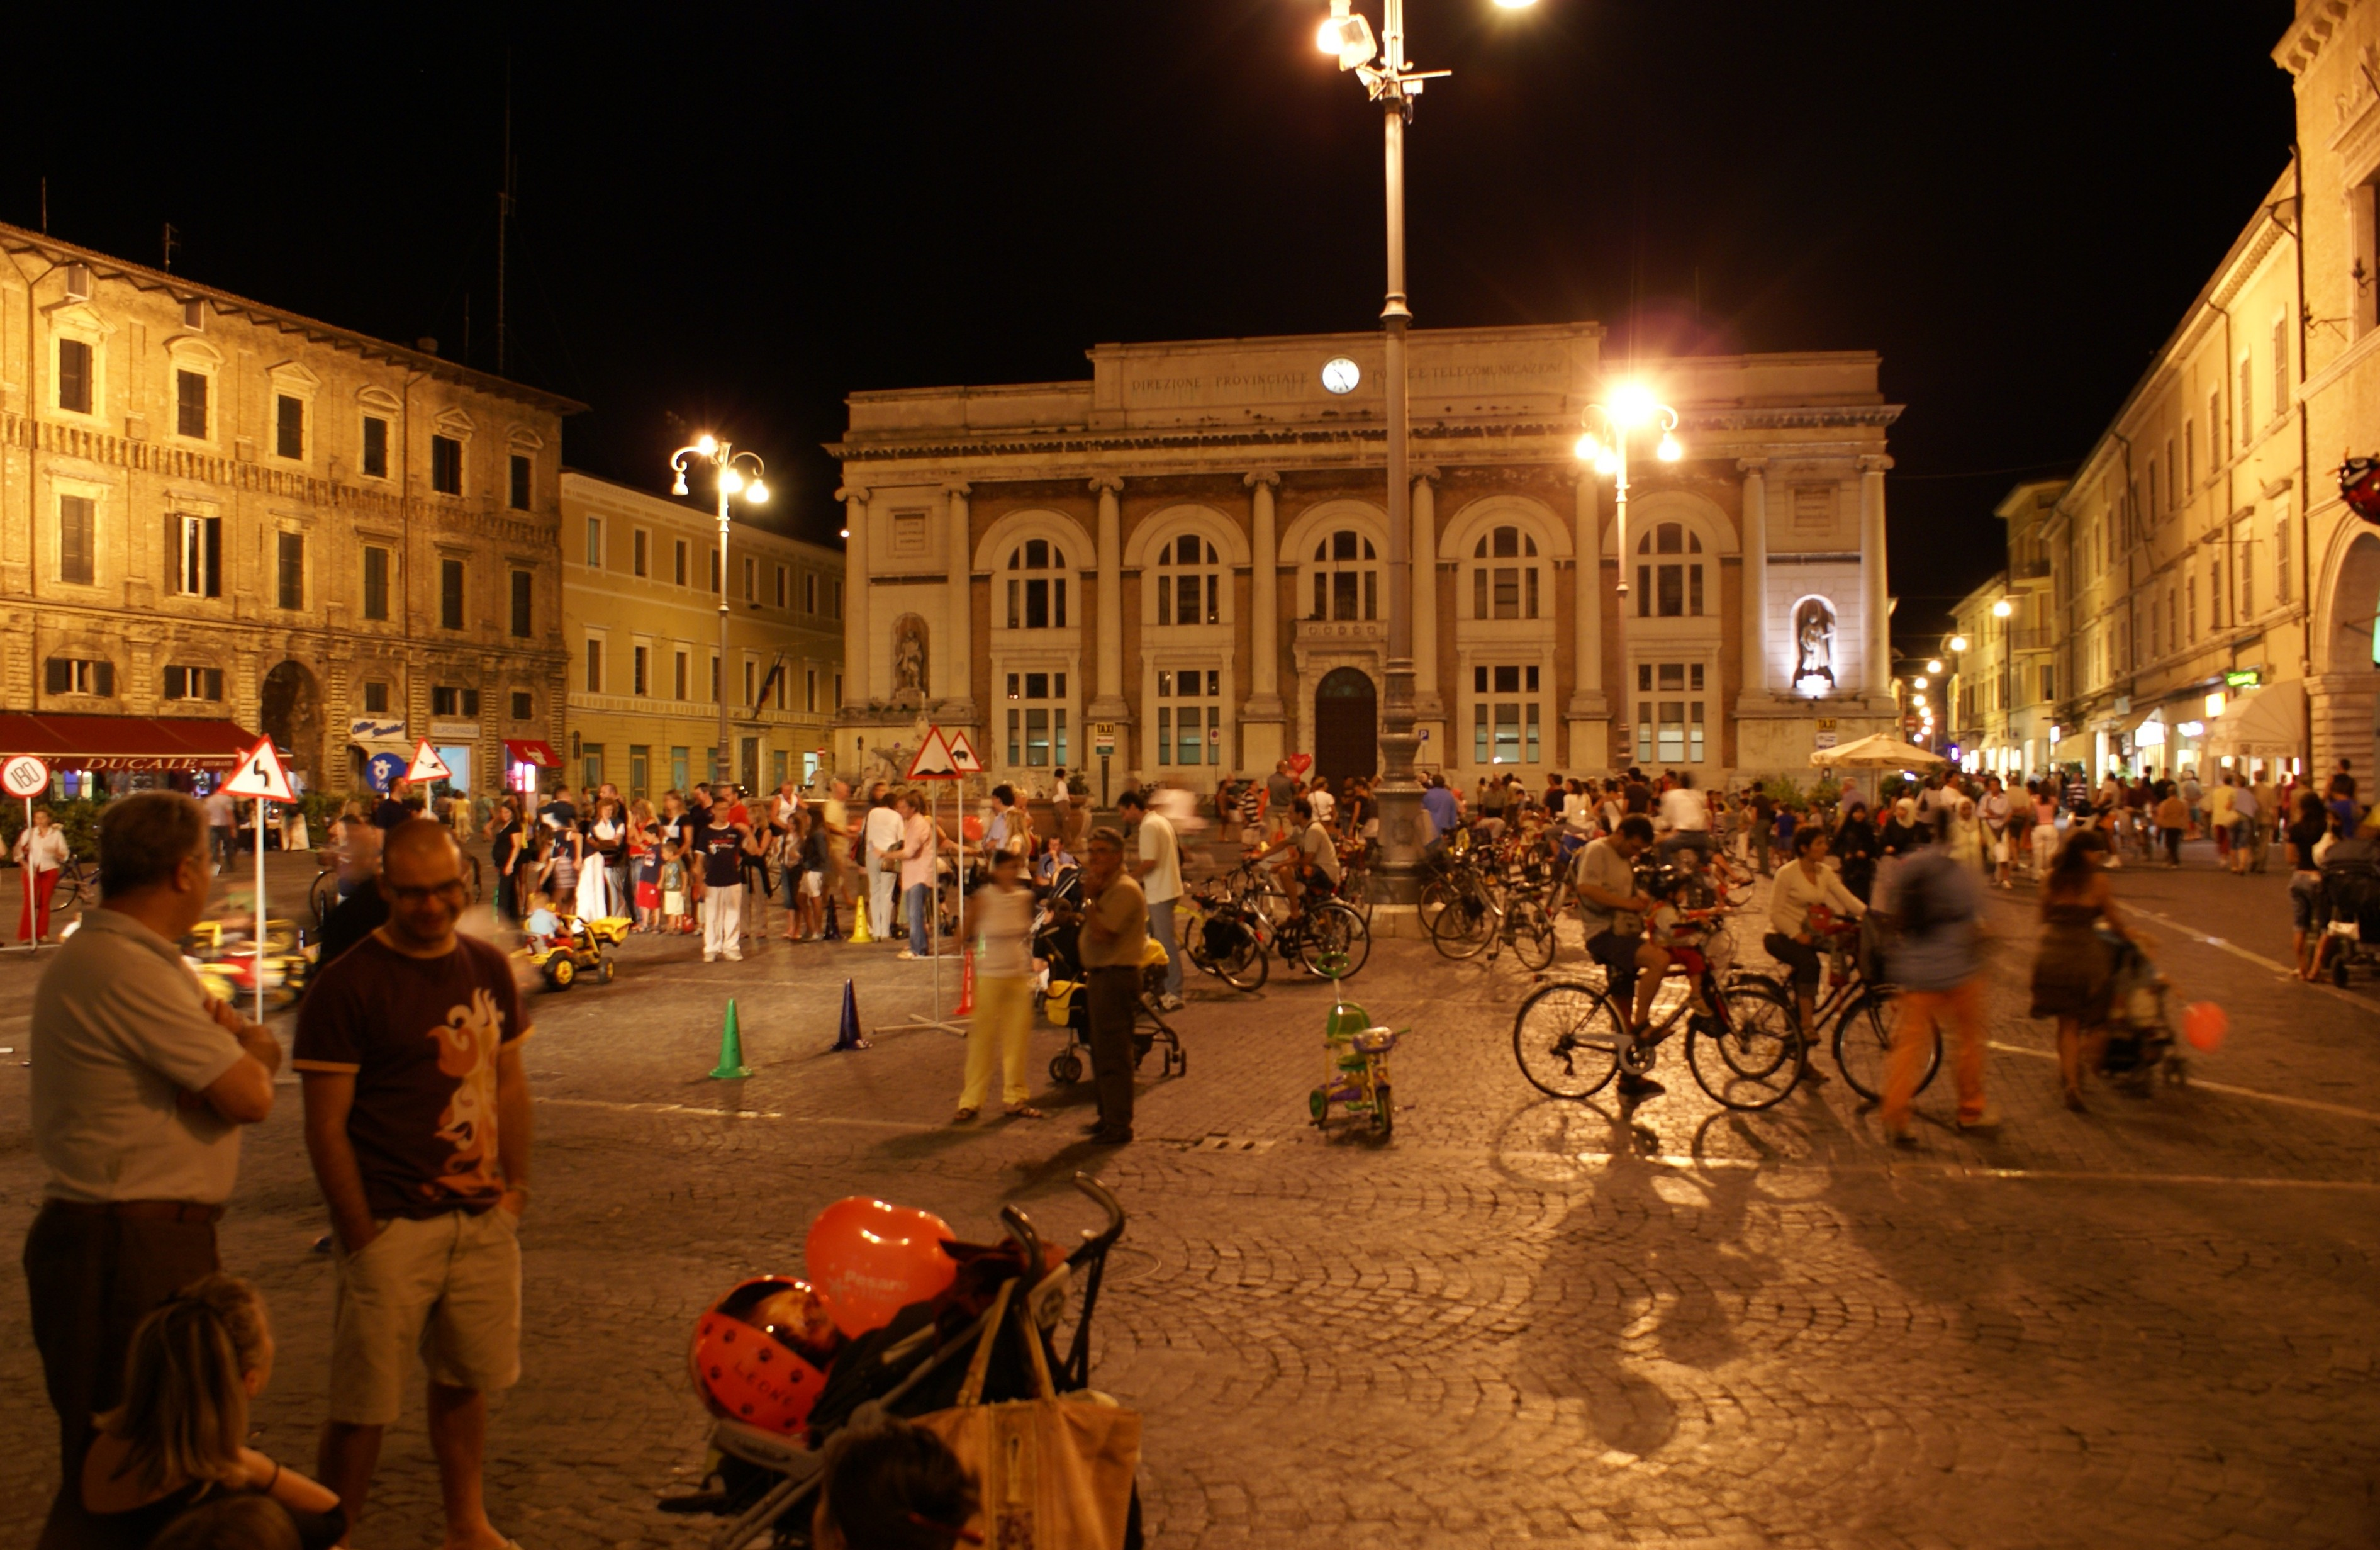 Pesaro Italy  city pictures gallery : Piazza del Popolo, Pesaro, Italy Wikimedia Commons